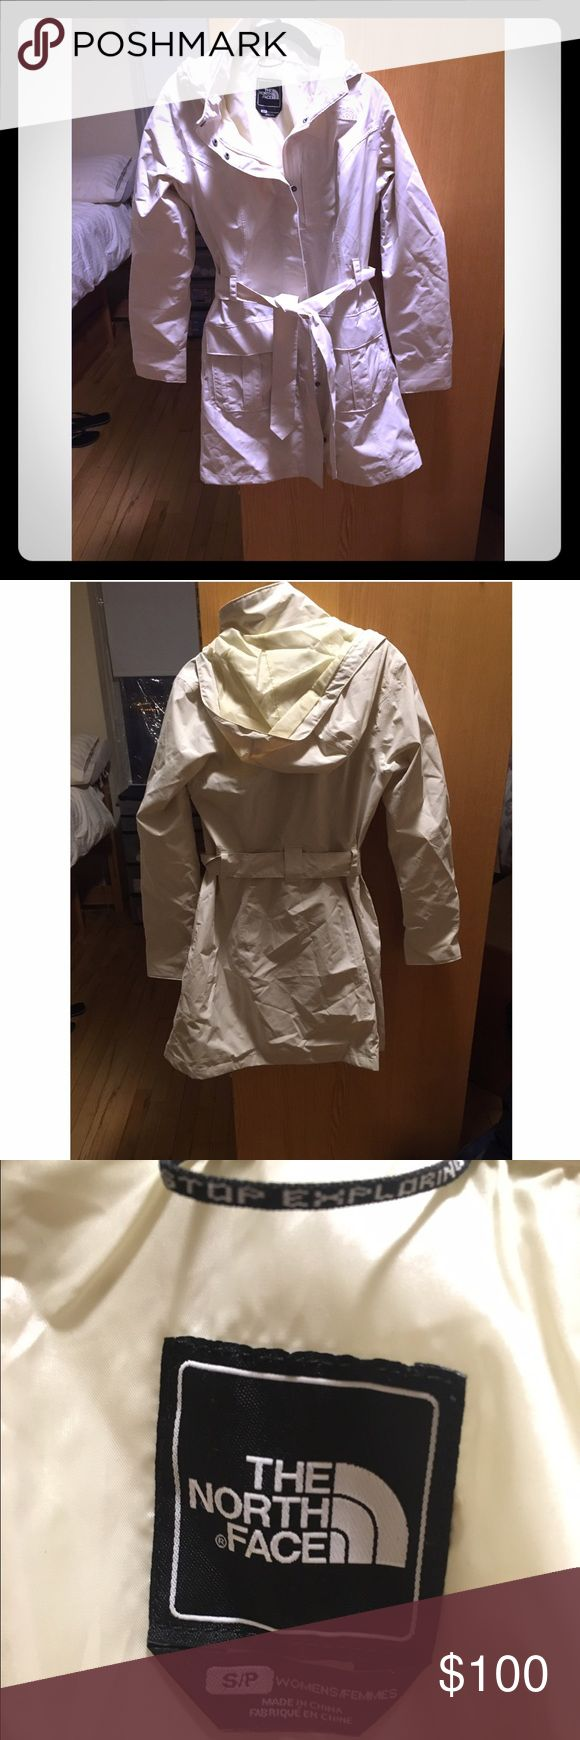 The North Face Women's rain trench coat The North Face Women's rain trench coat size small cream color. Waterproof, belted tie, pockets, longer length.  Worn less than 10 times, too big for me. Very nice coat. The North Face Jackets & Coats Trench Coats